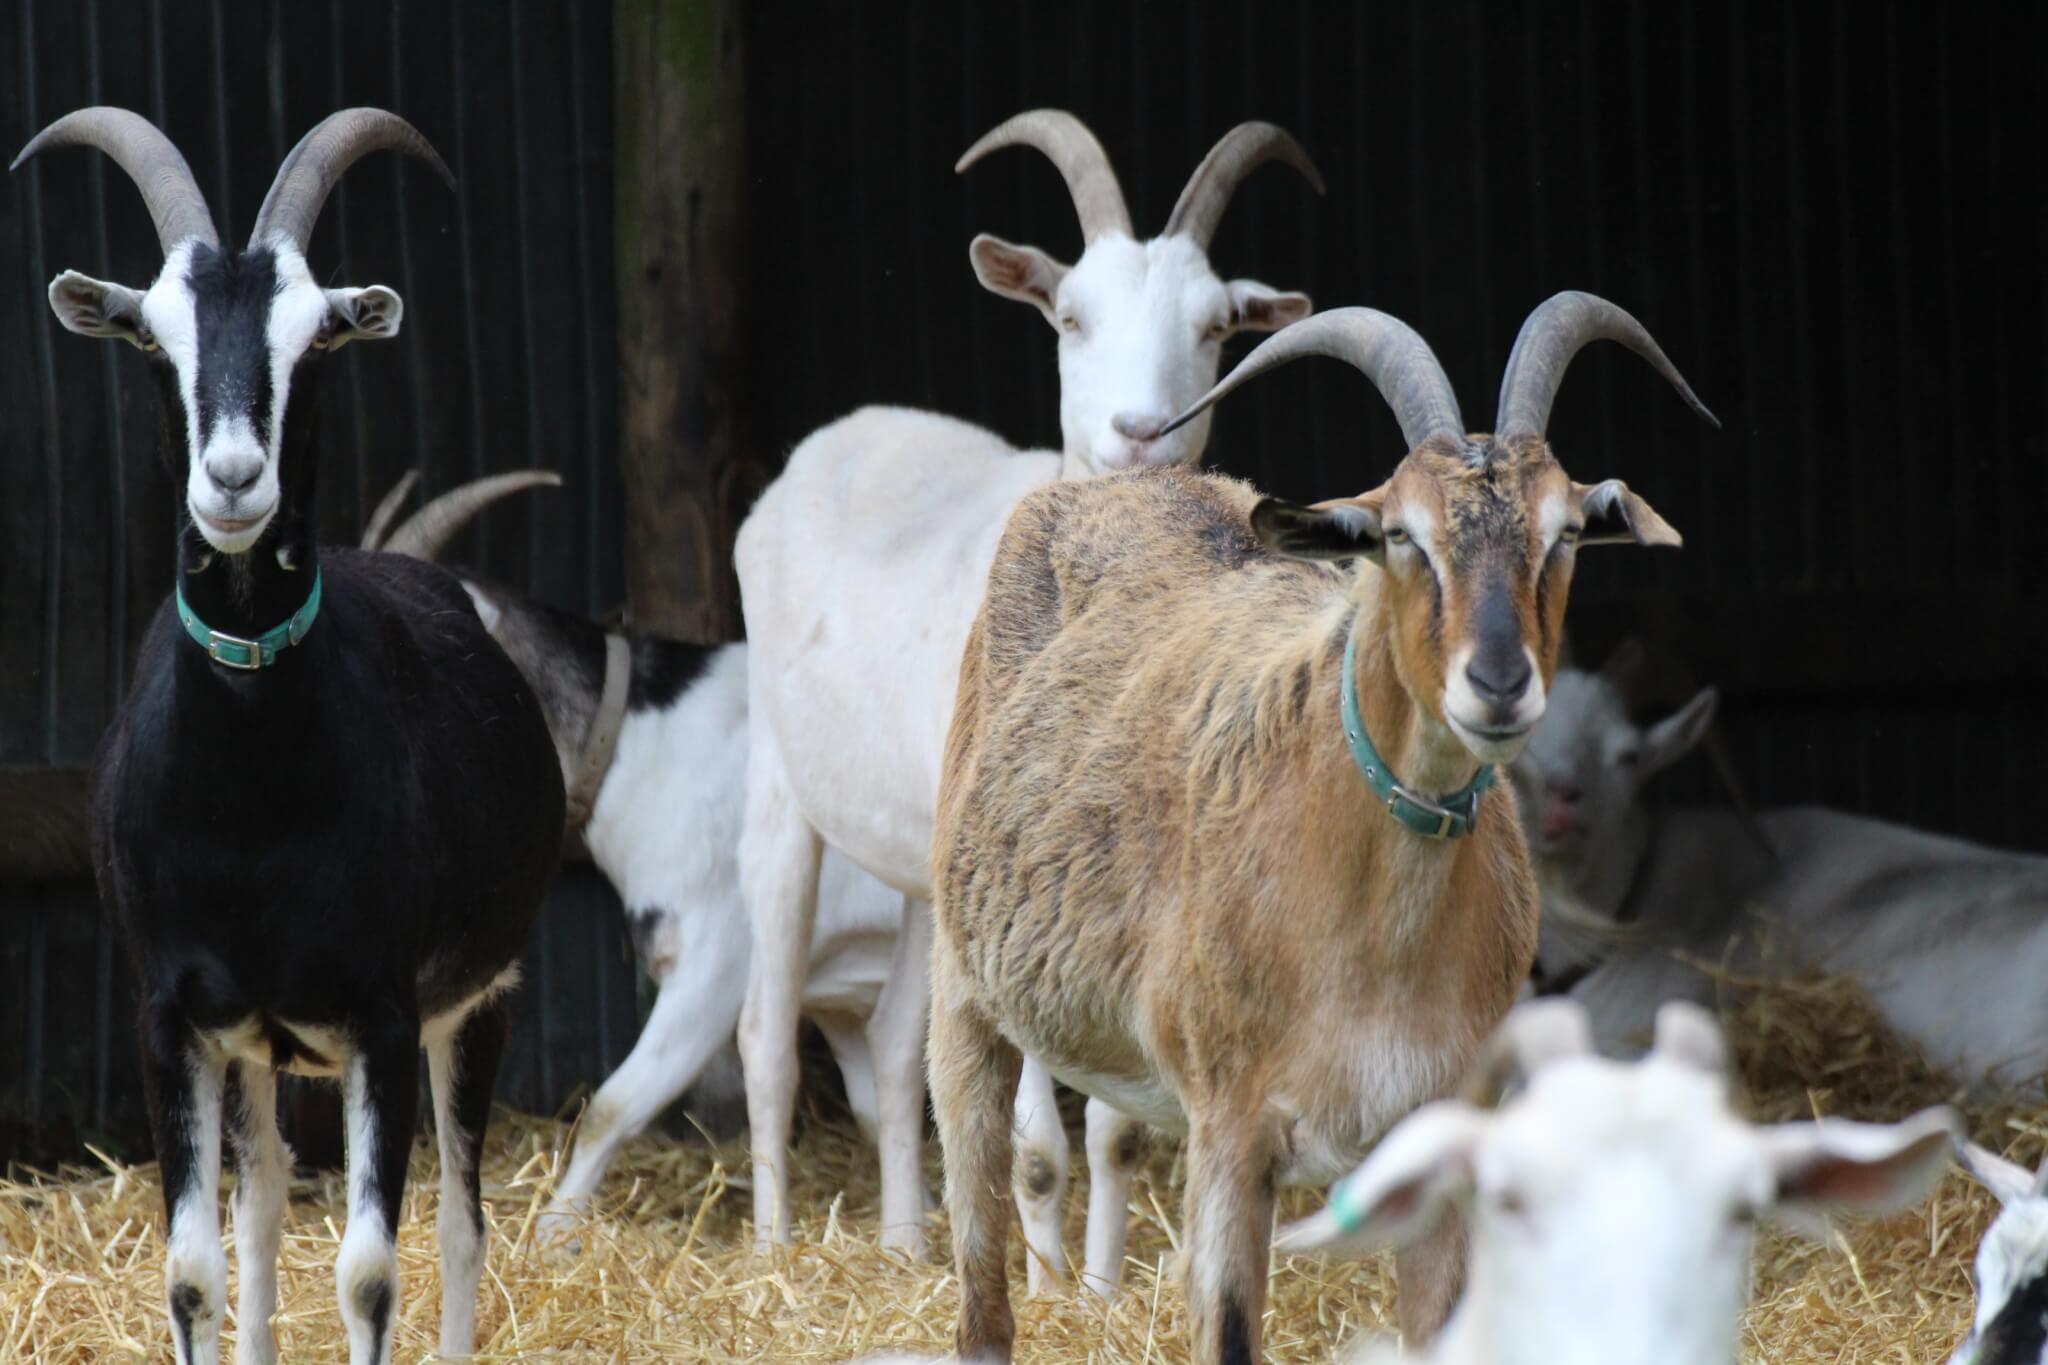 Ferne Animal Sanctuary group of goats